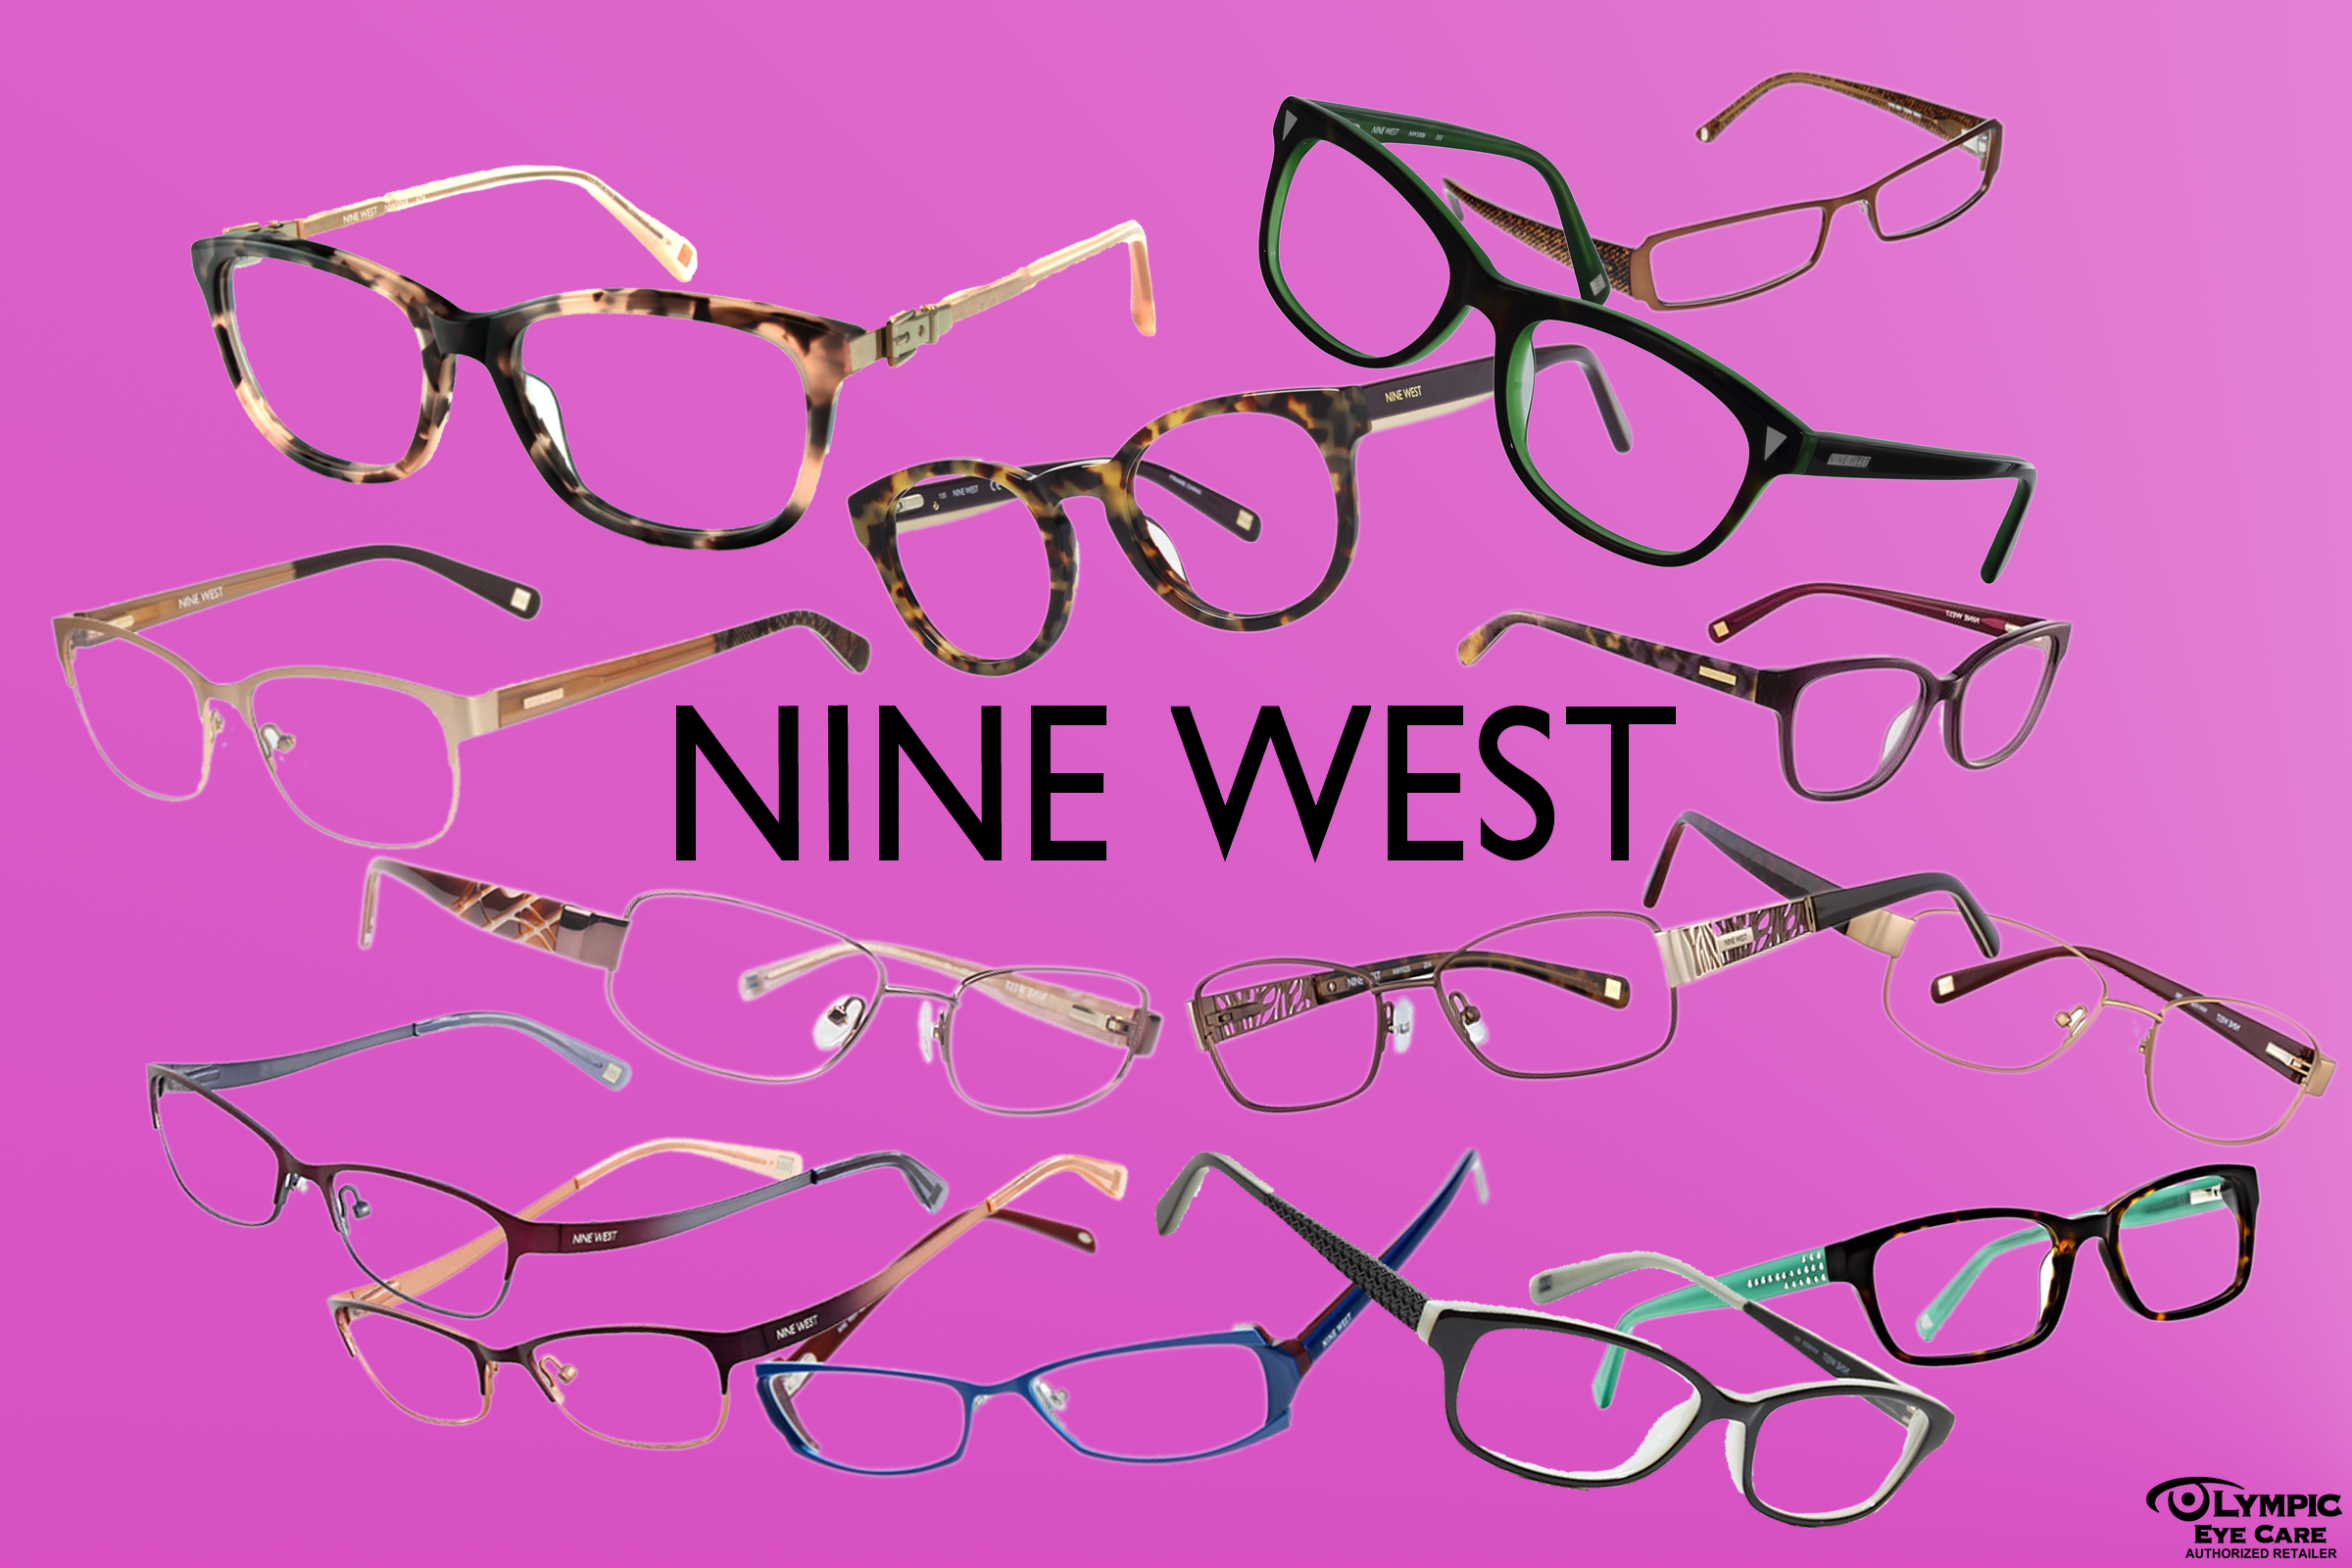 oec_ninewest_final_2400_1600.png